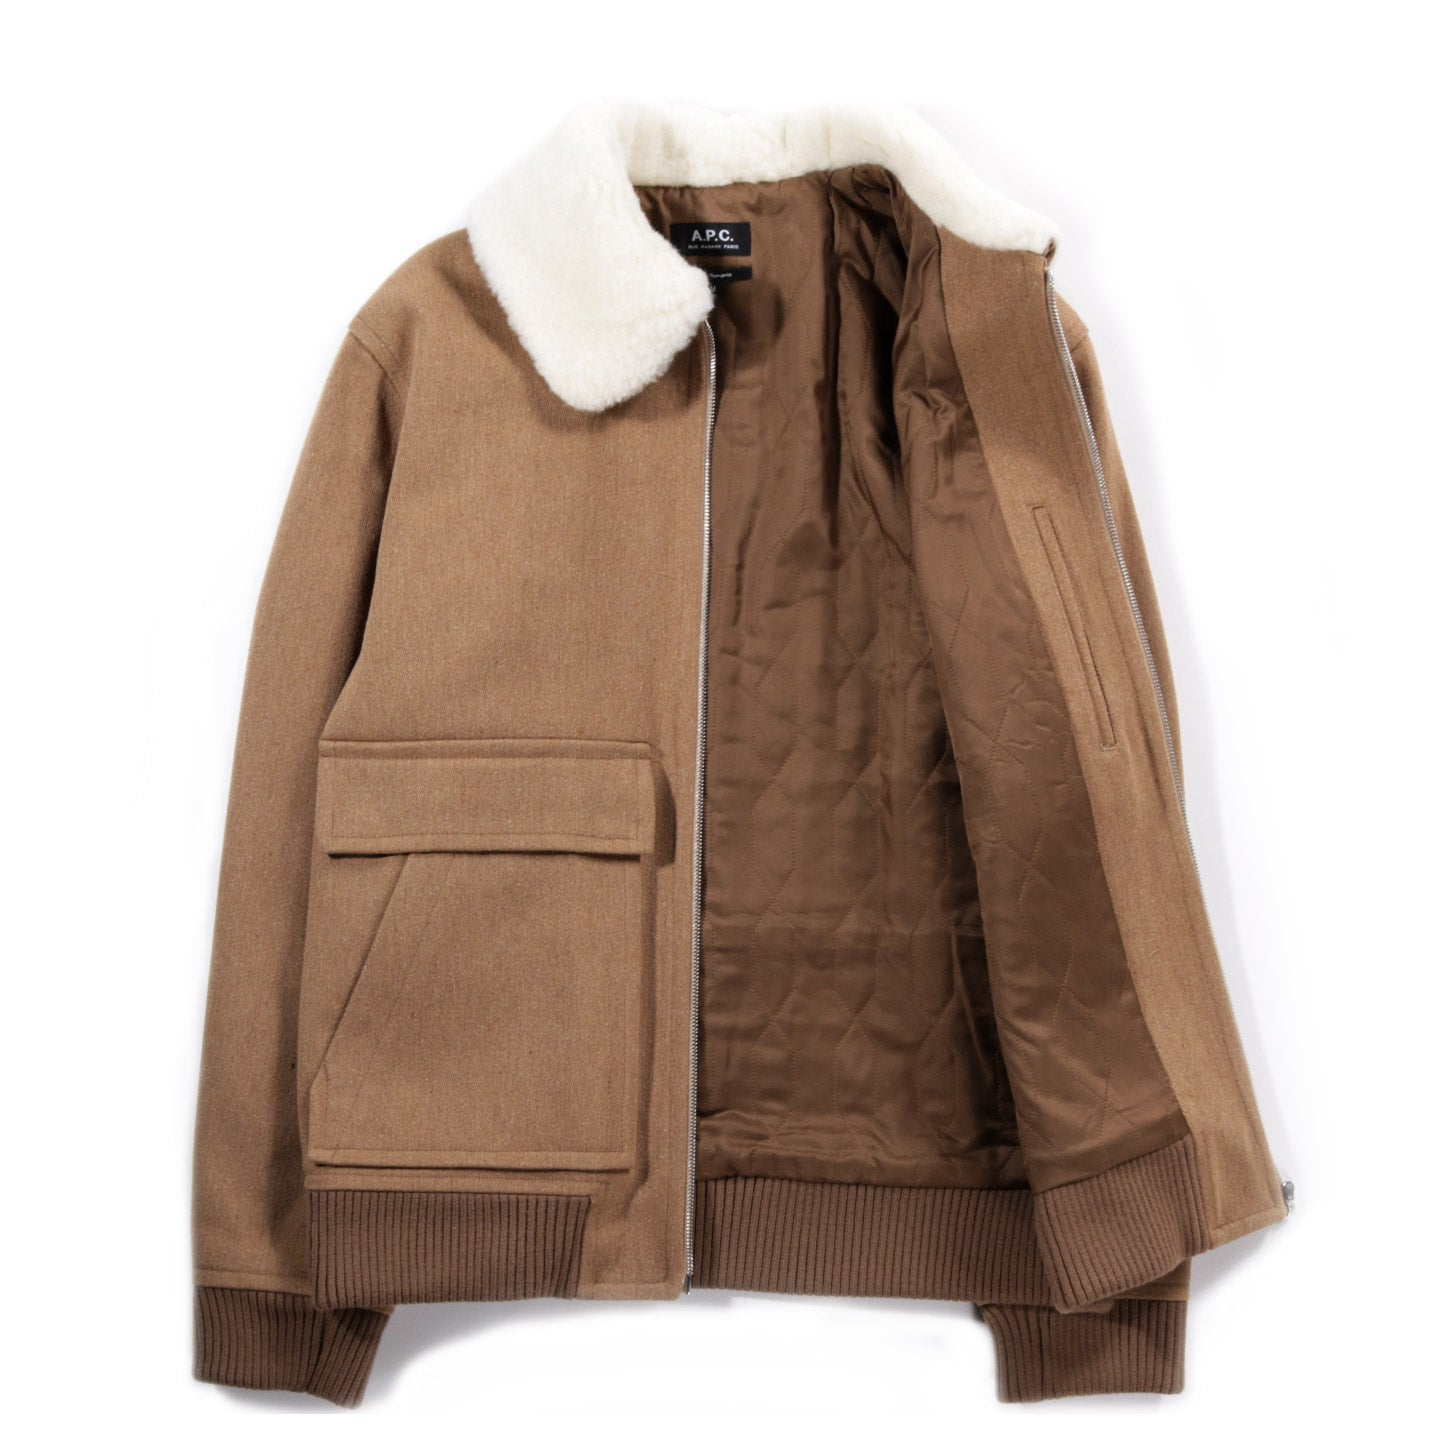 A.P.C. BRONZE JACKET HEATHER BEIGE